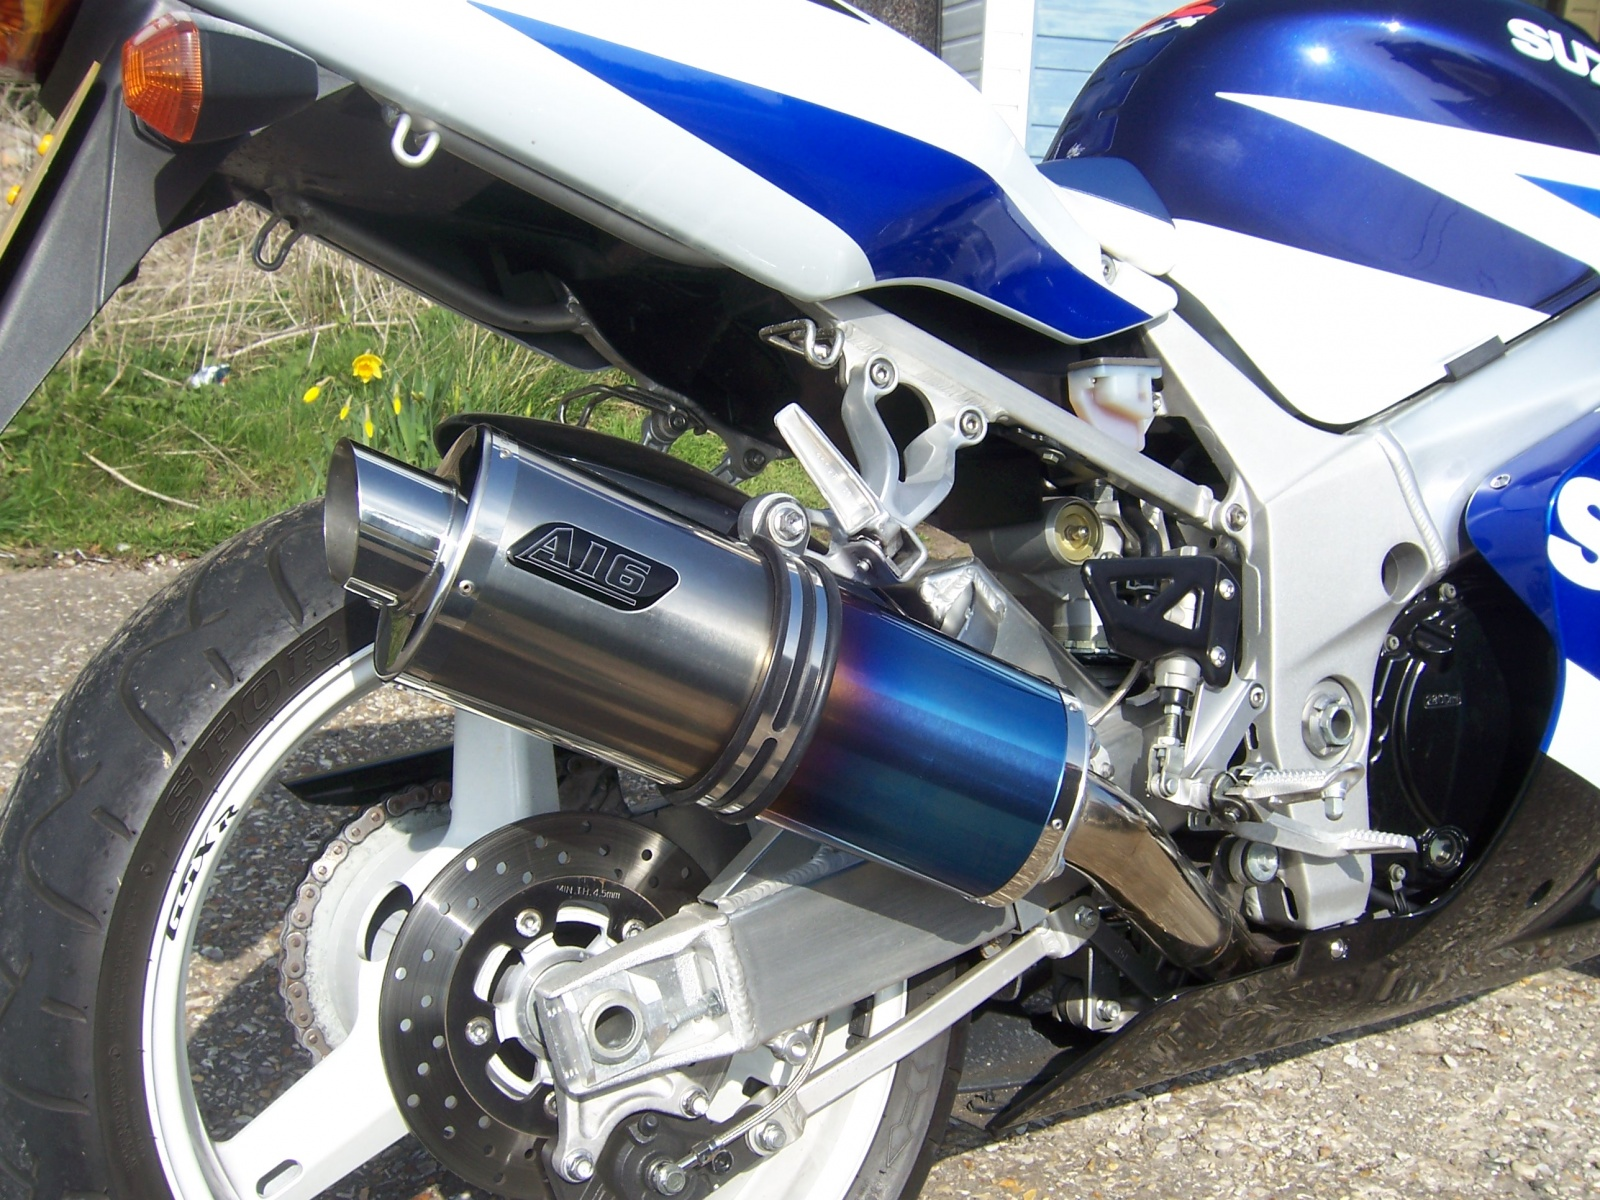 """Suzuki GSXR 600 750 K1-K5 2001-2005<p>A16 Road Legal Coloured Titanium Exhaust with Slashcut Outlet</p><br><a href=""""https://a16roadnracesupplies.co.uk/product/a16-suzuki-exhausts/"""">Buy now!</a>"""